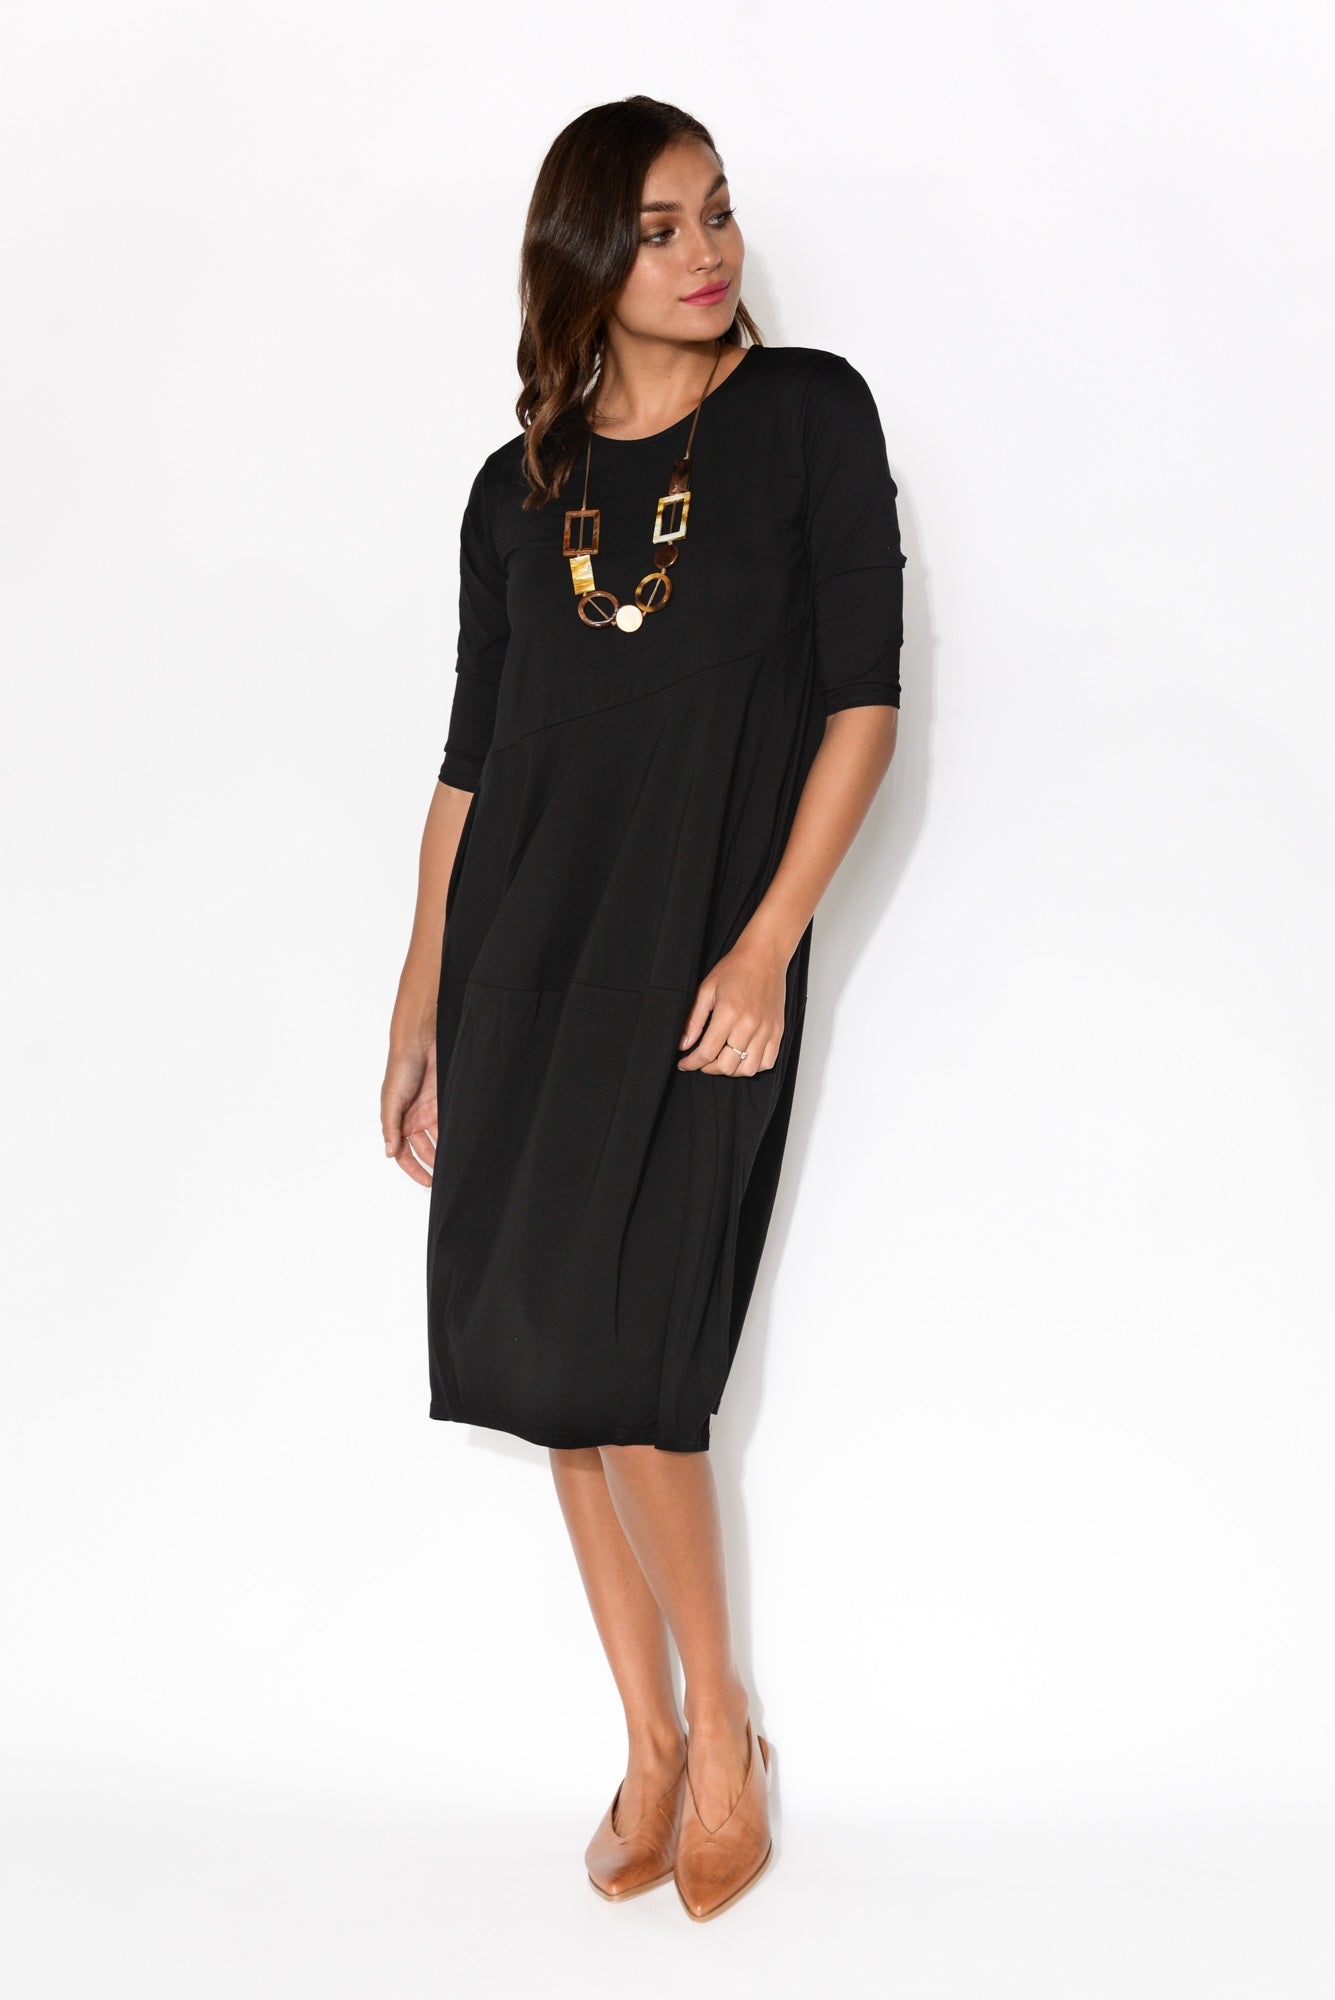 Nell Black Cotton Dress